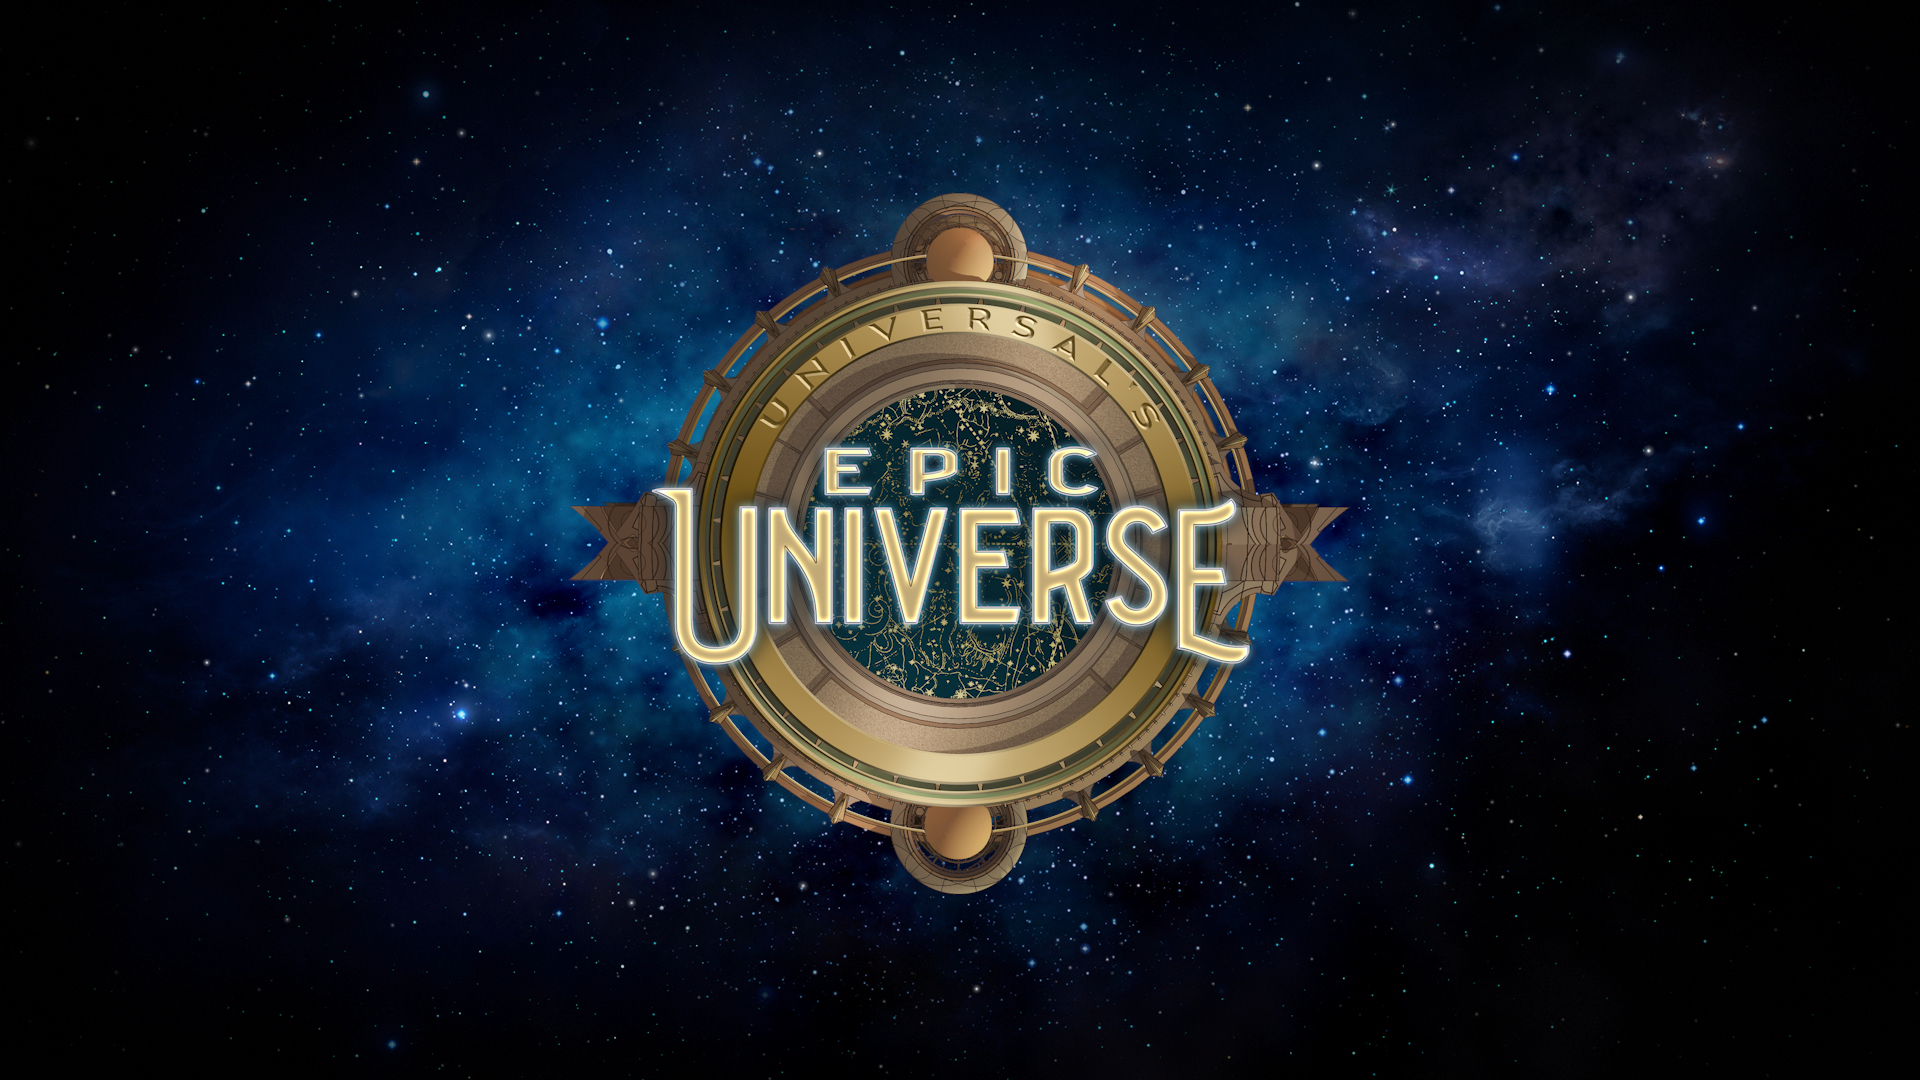 4 details from the Epic Universe concept art